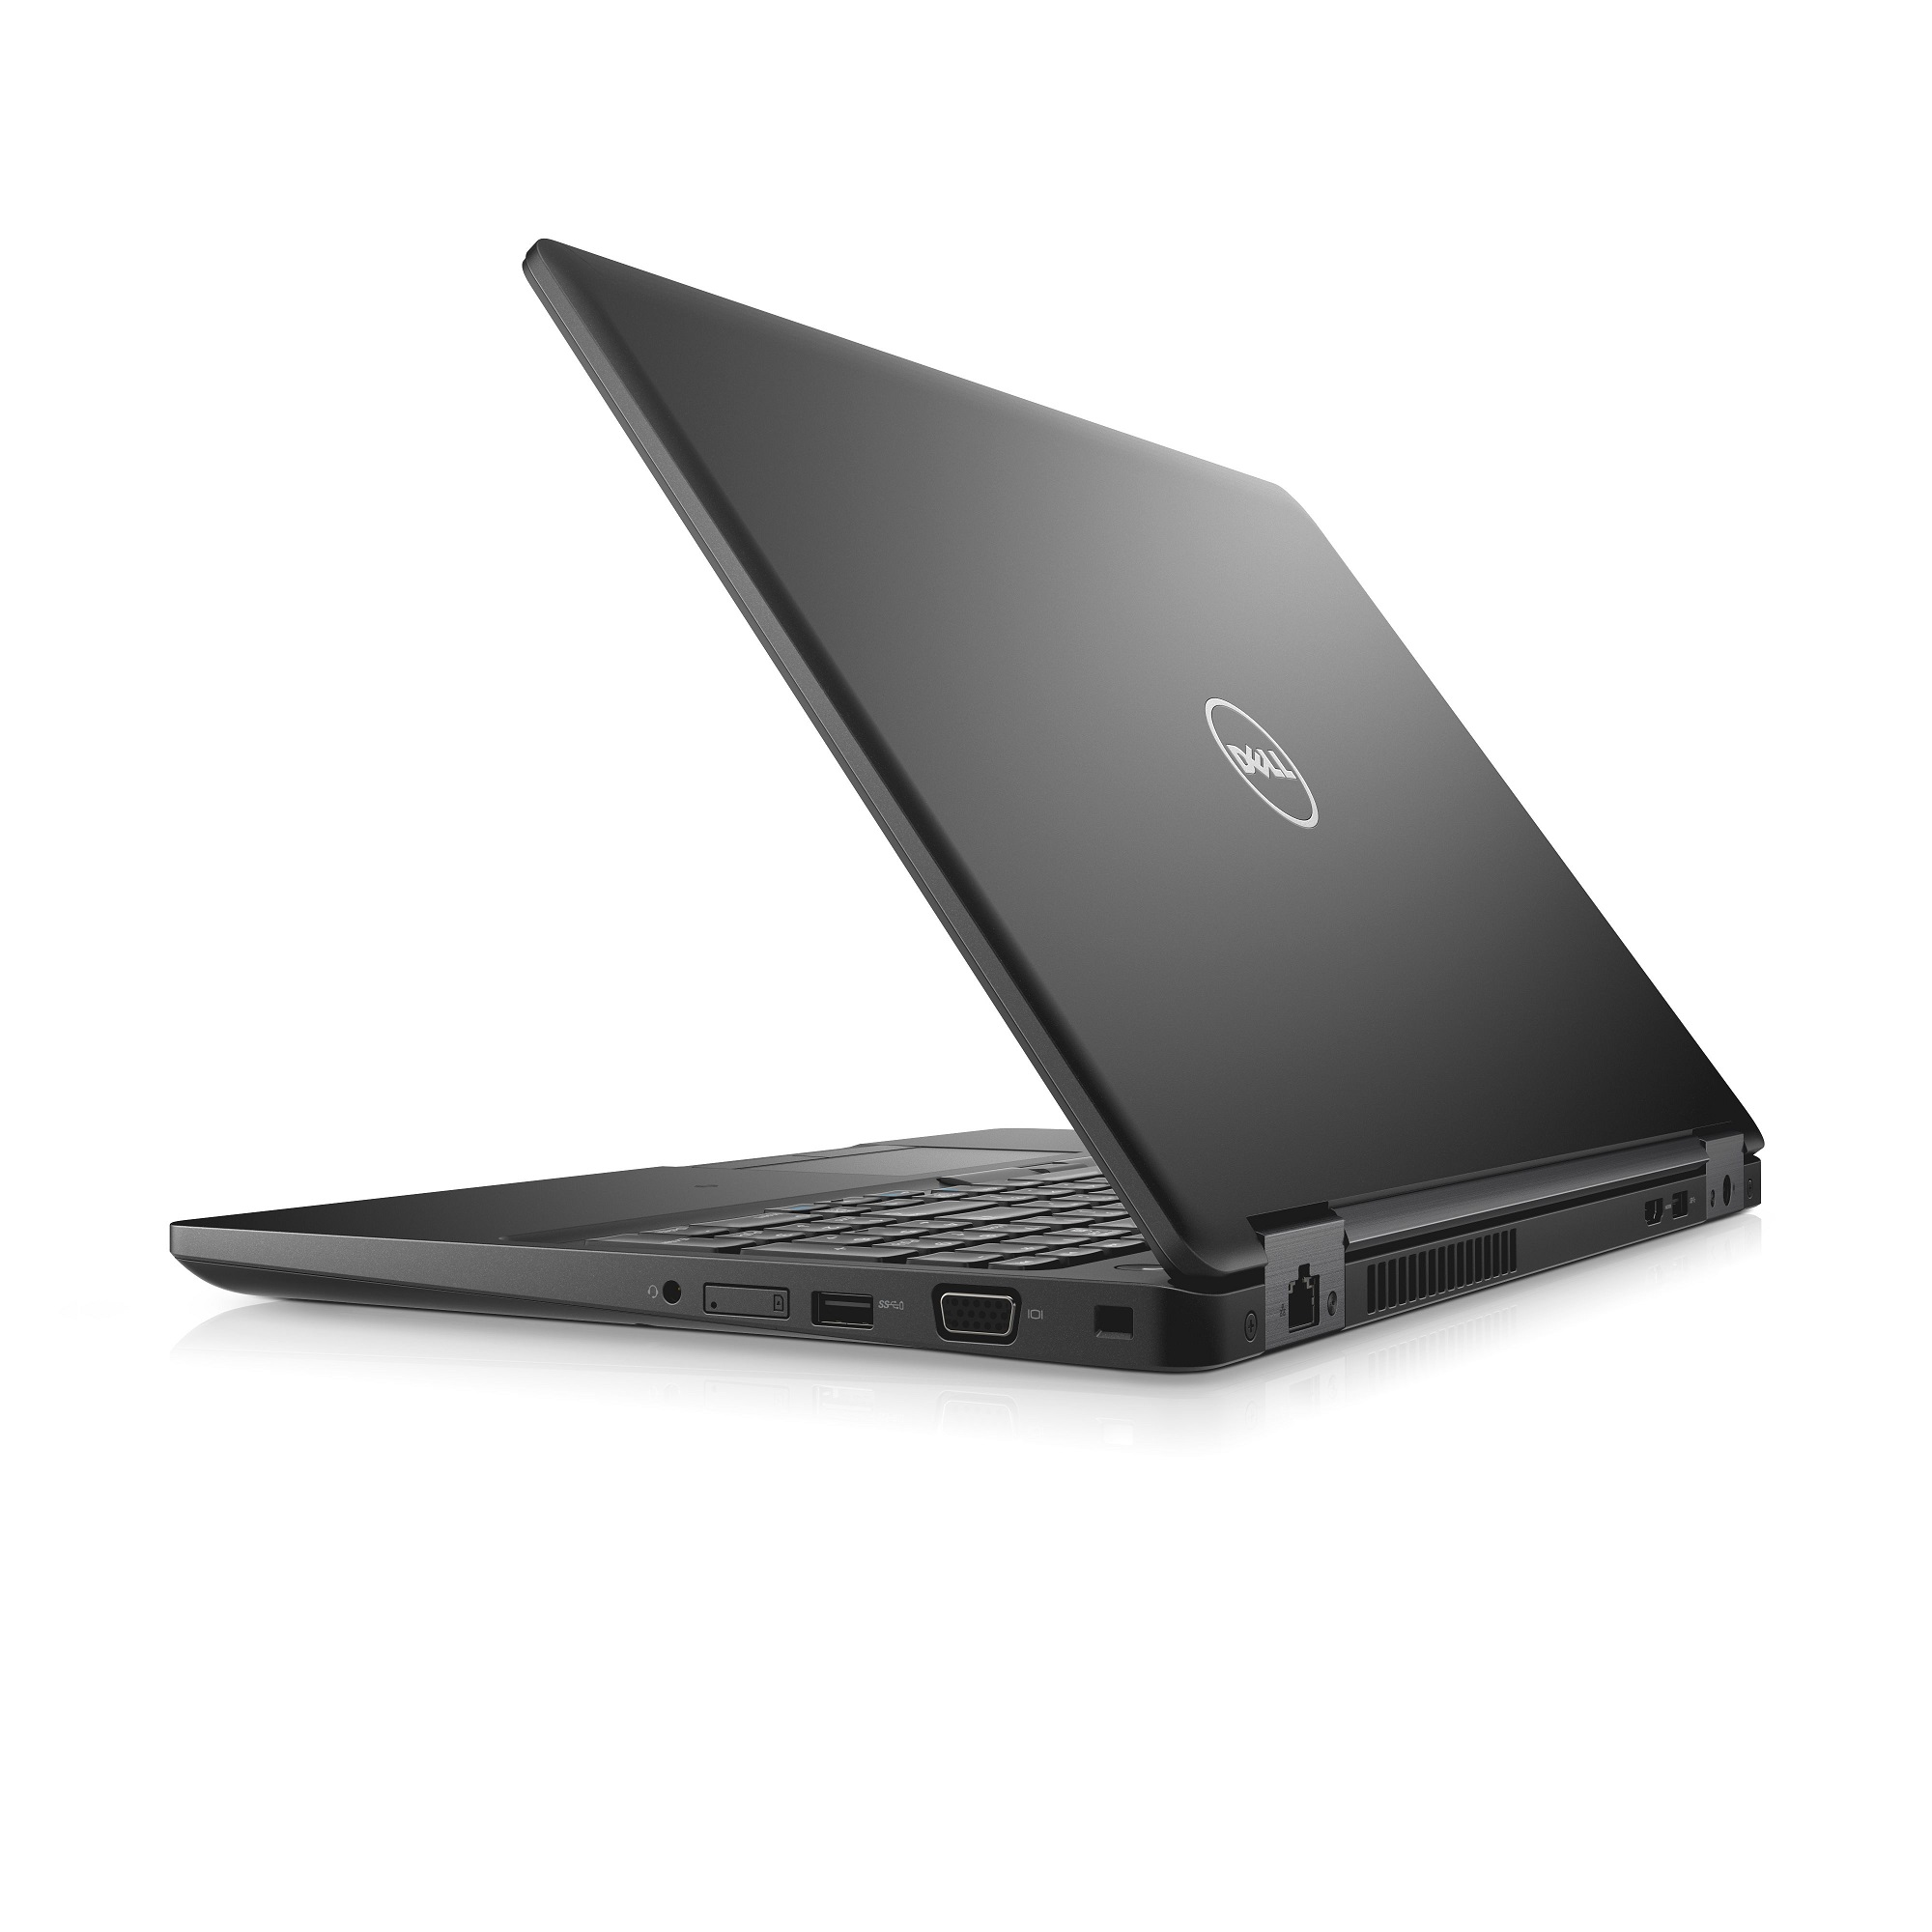 "DELL Latitude 5580/i7-7600/8GB/256GB SSD/Nvidia 930MX/15.6"" FHD/Win 10Pro/Black"